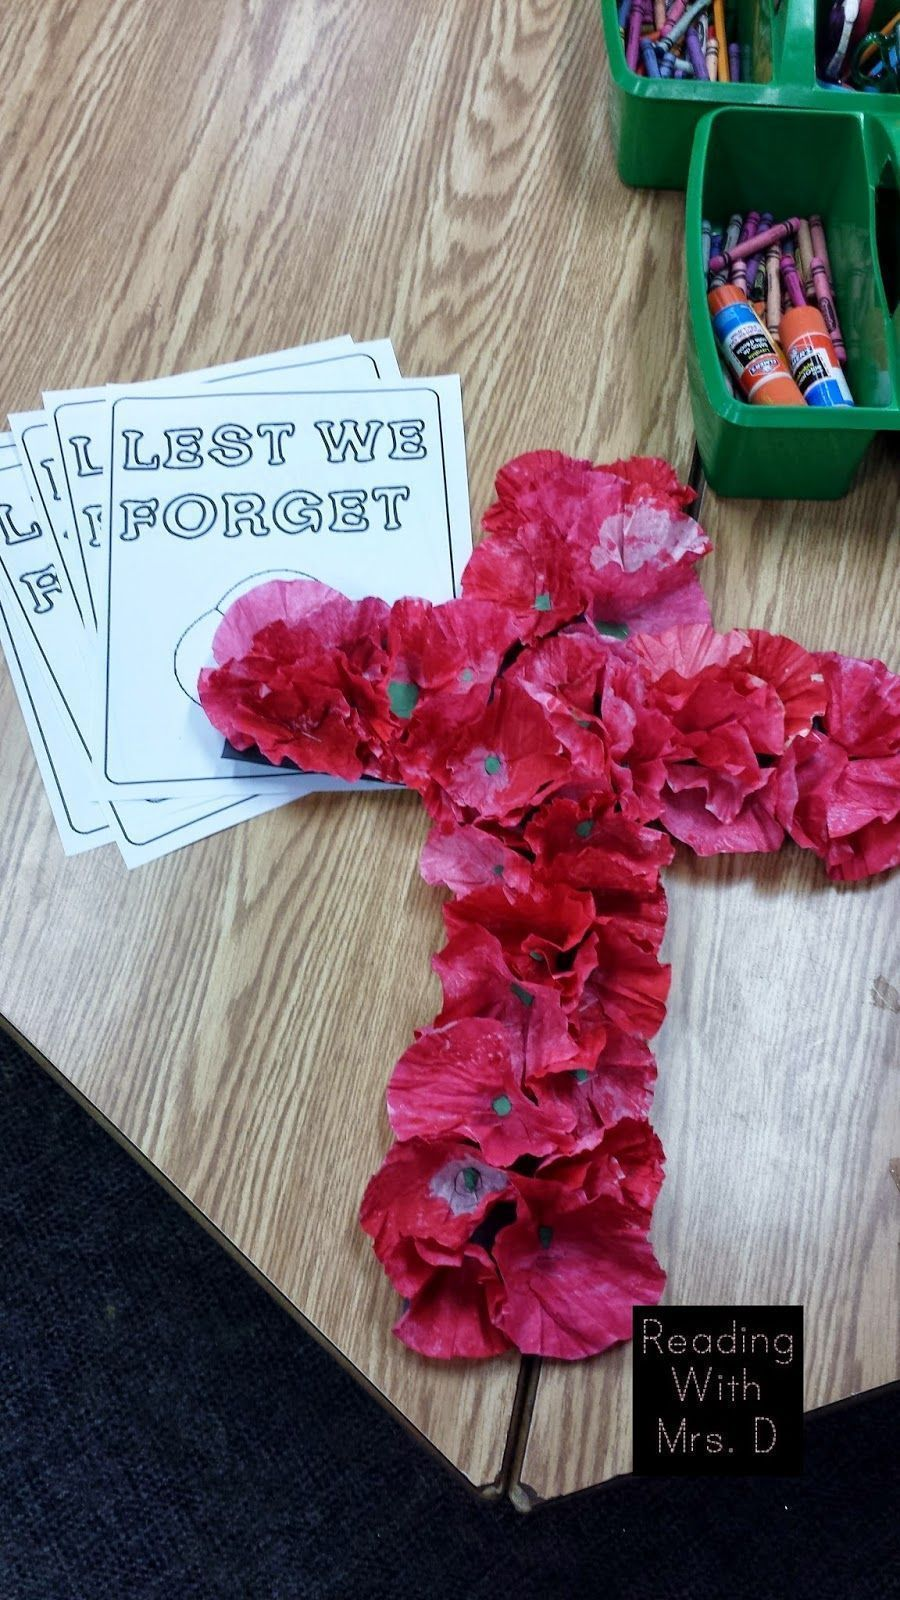 Reading with Mrs. D: Remembrance day 2014 Activities and Cross Tutorial #remembrancedaycraftsforkids Reading with Mrs. D: Remembrance day 2014 Activities and Cross Tutorial #remembrancedaycraftsforkids Reading with Mrs. D: Remembrance day 2014 Activities and Cross Tutorial #remembrancedaycraftsforkids Reading with Mrs. D: Remembrance day 2014 Activities and Cross Tutorial #poppycraftsforkids Reading with Mrs. D: Remembrance day 2014 Activities and Cross Tutorial #remembrancedaycraftsforkids Read